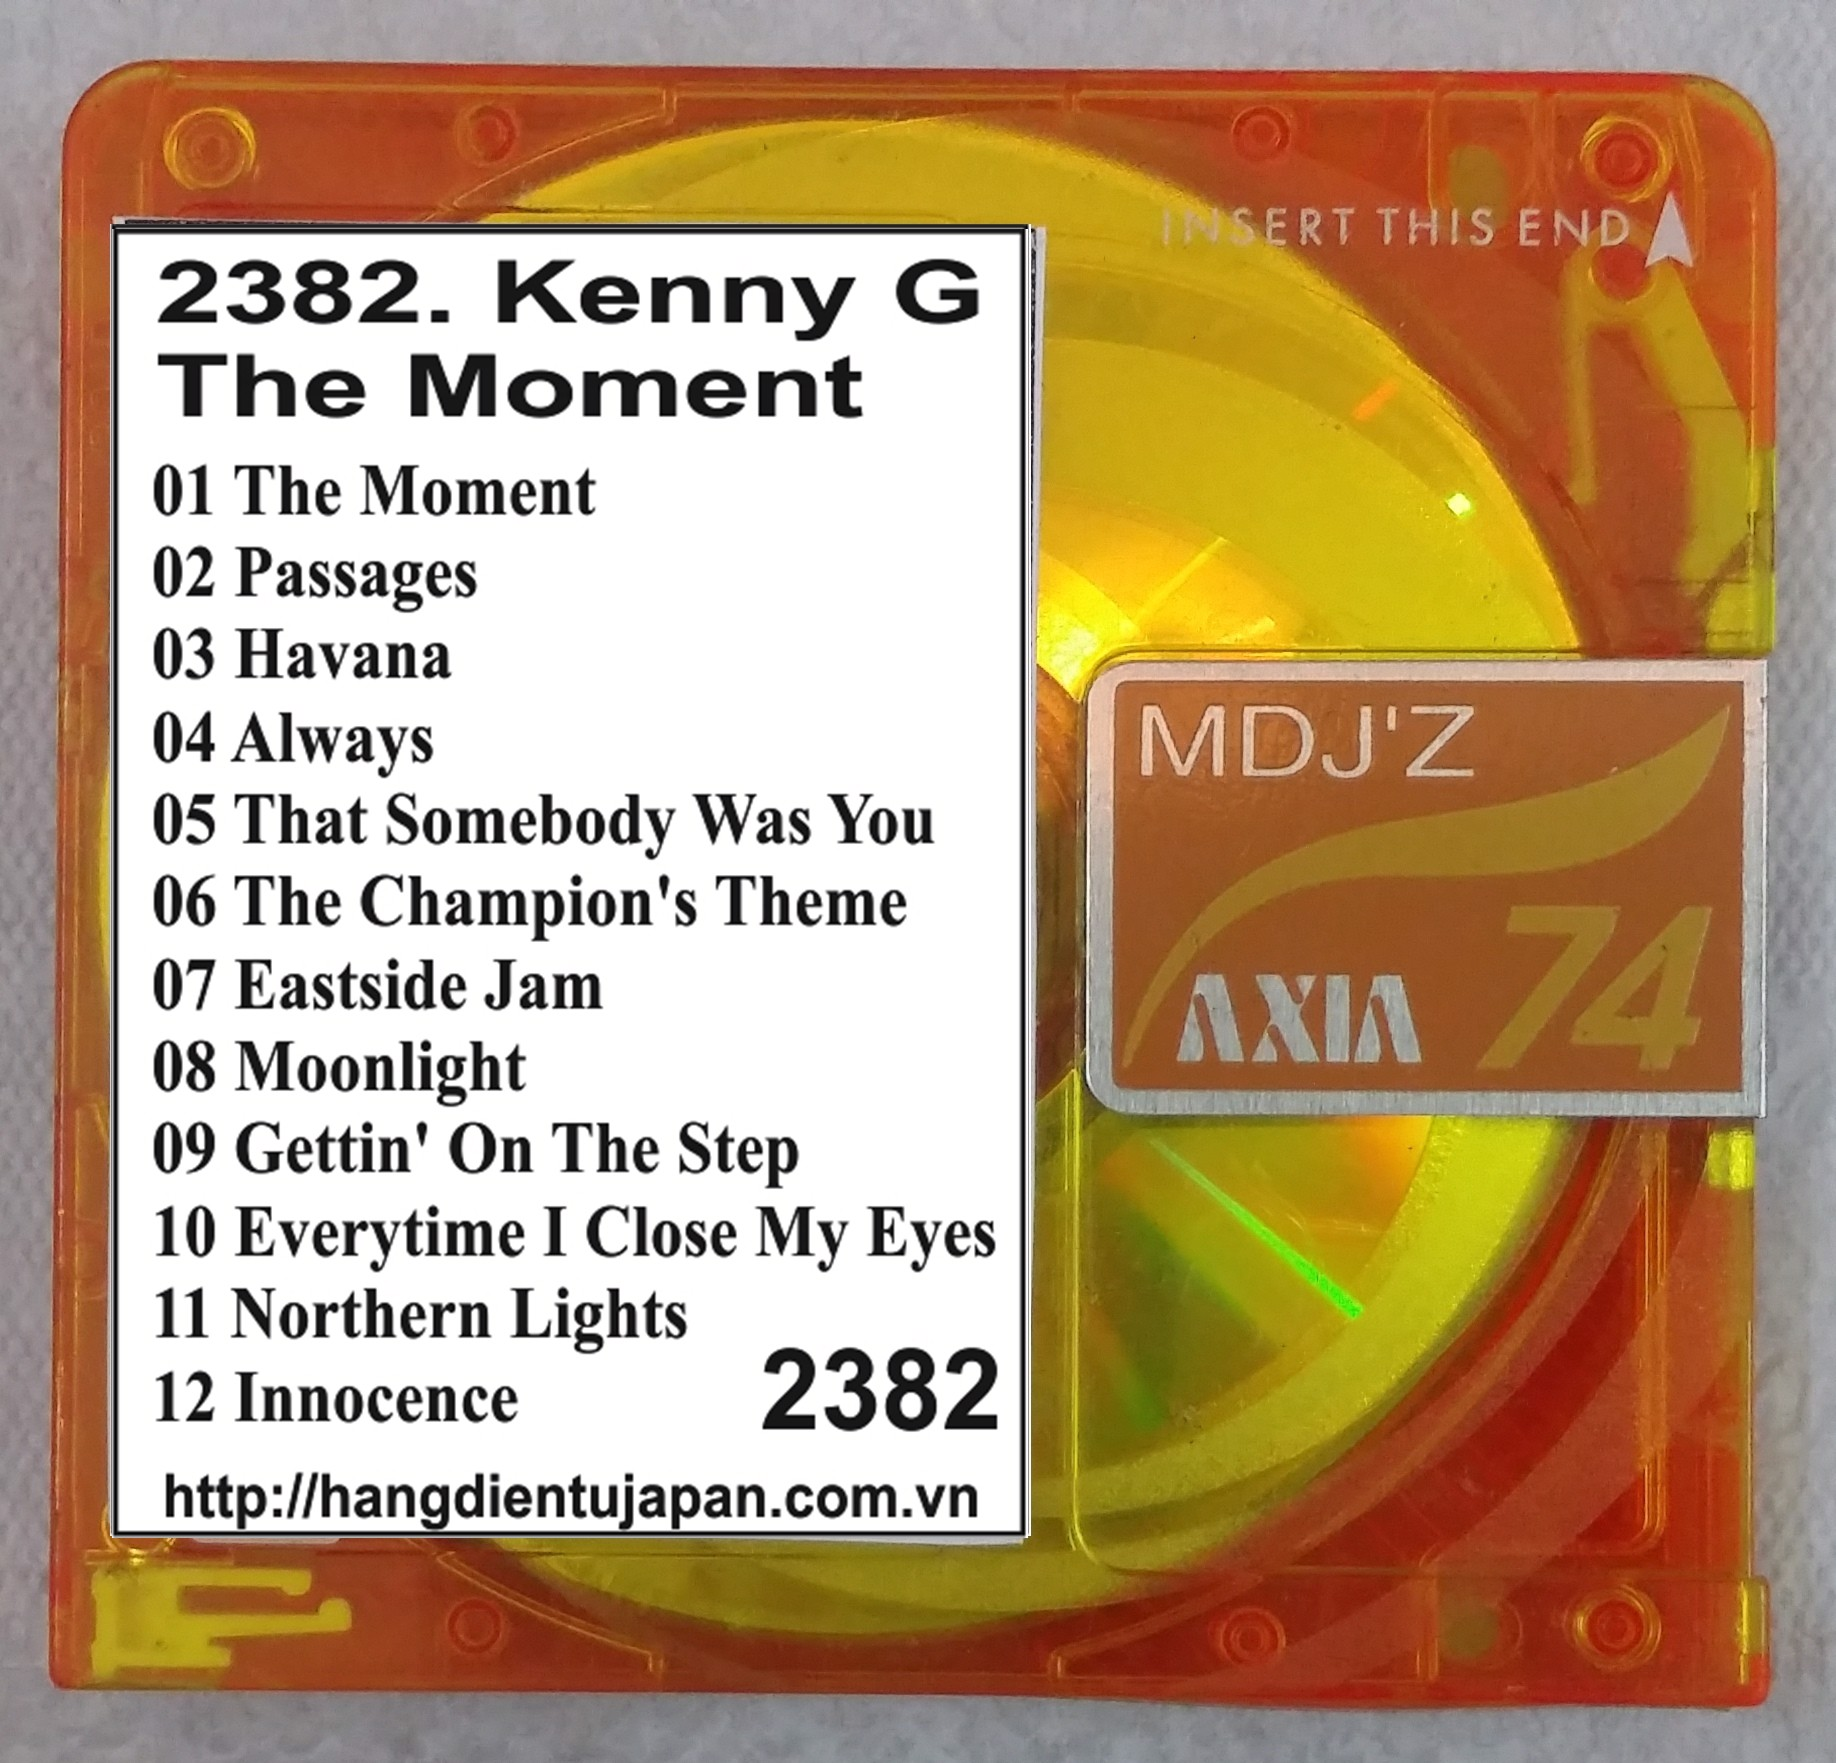 2382. Kenny G - The Moment